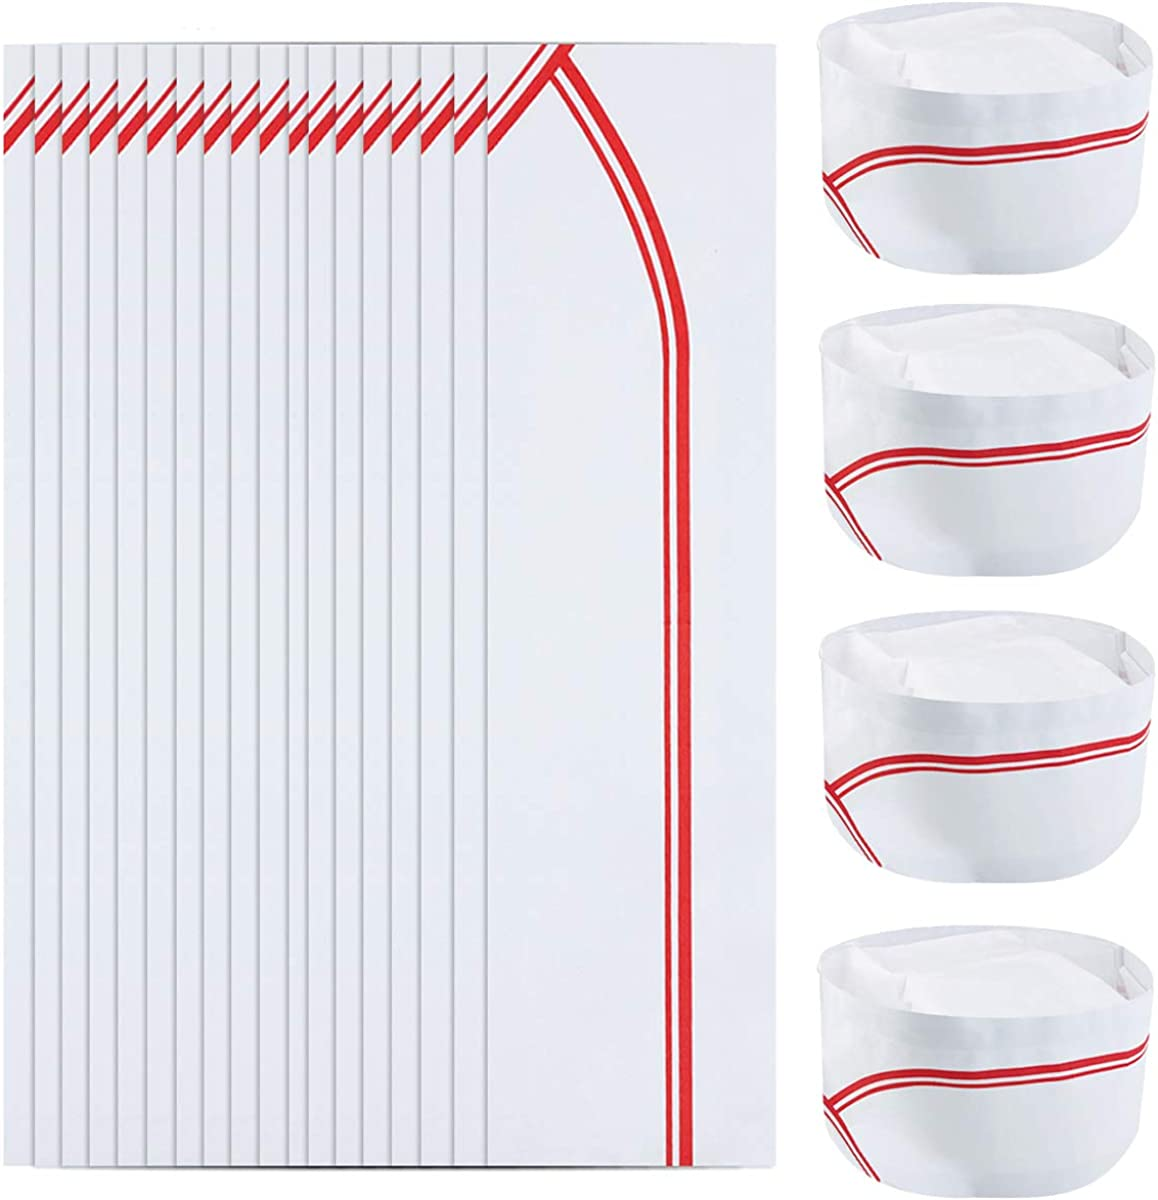 Owevvin 60 Pieces 3.8 Inch Disposable Paper Chef Hat with Red Strips, Soda Jerk Paper Cap Kitchen Cooking Chef Cap Retro Diner Food Server Hat for Restaurants, School Classes, Theme Party